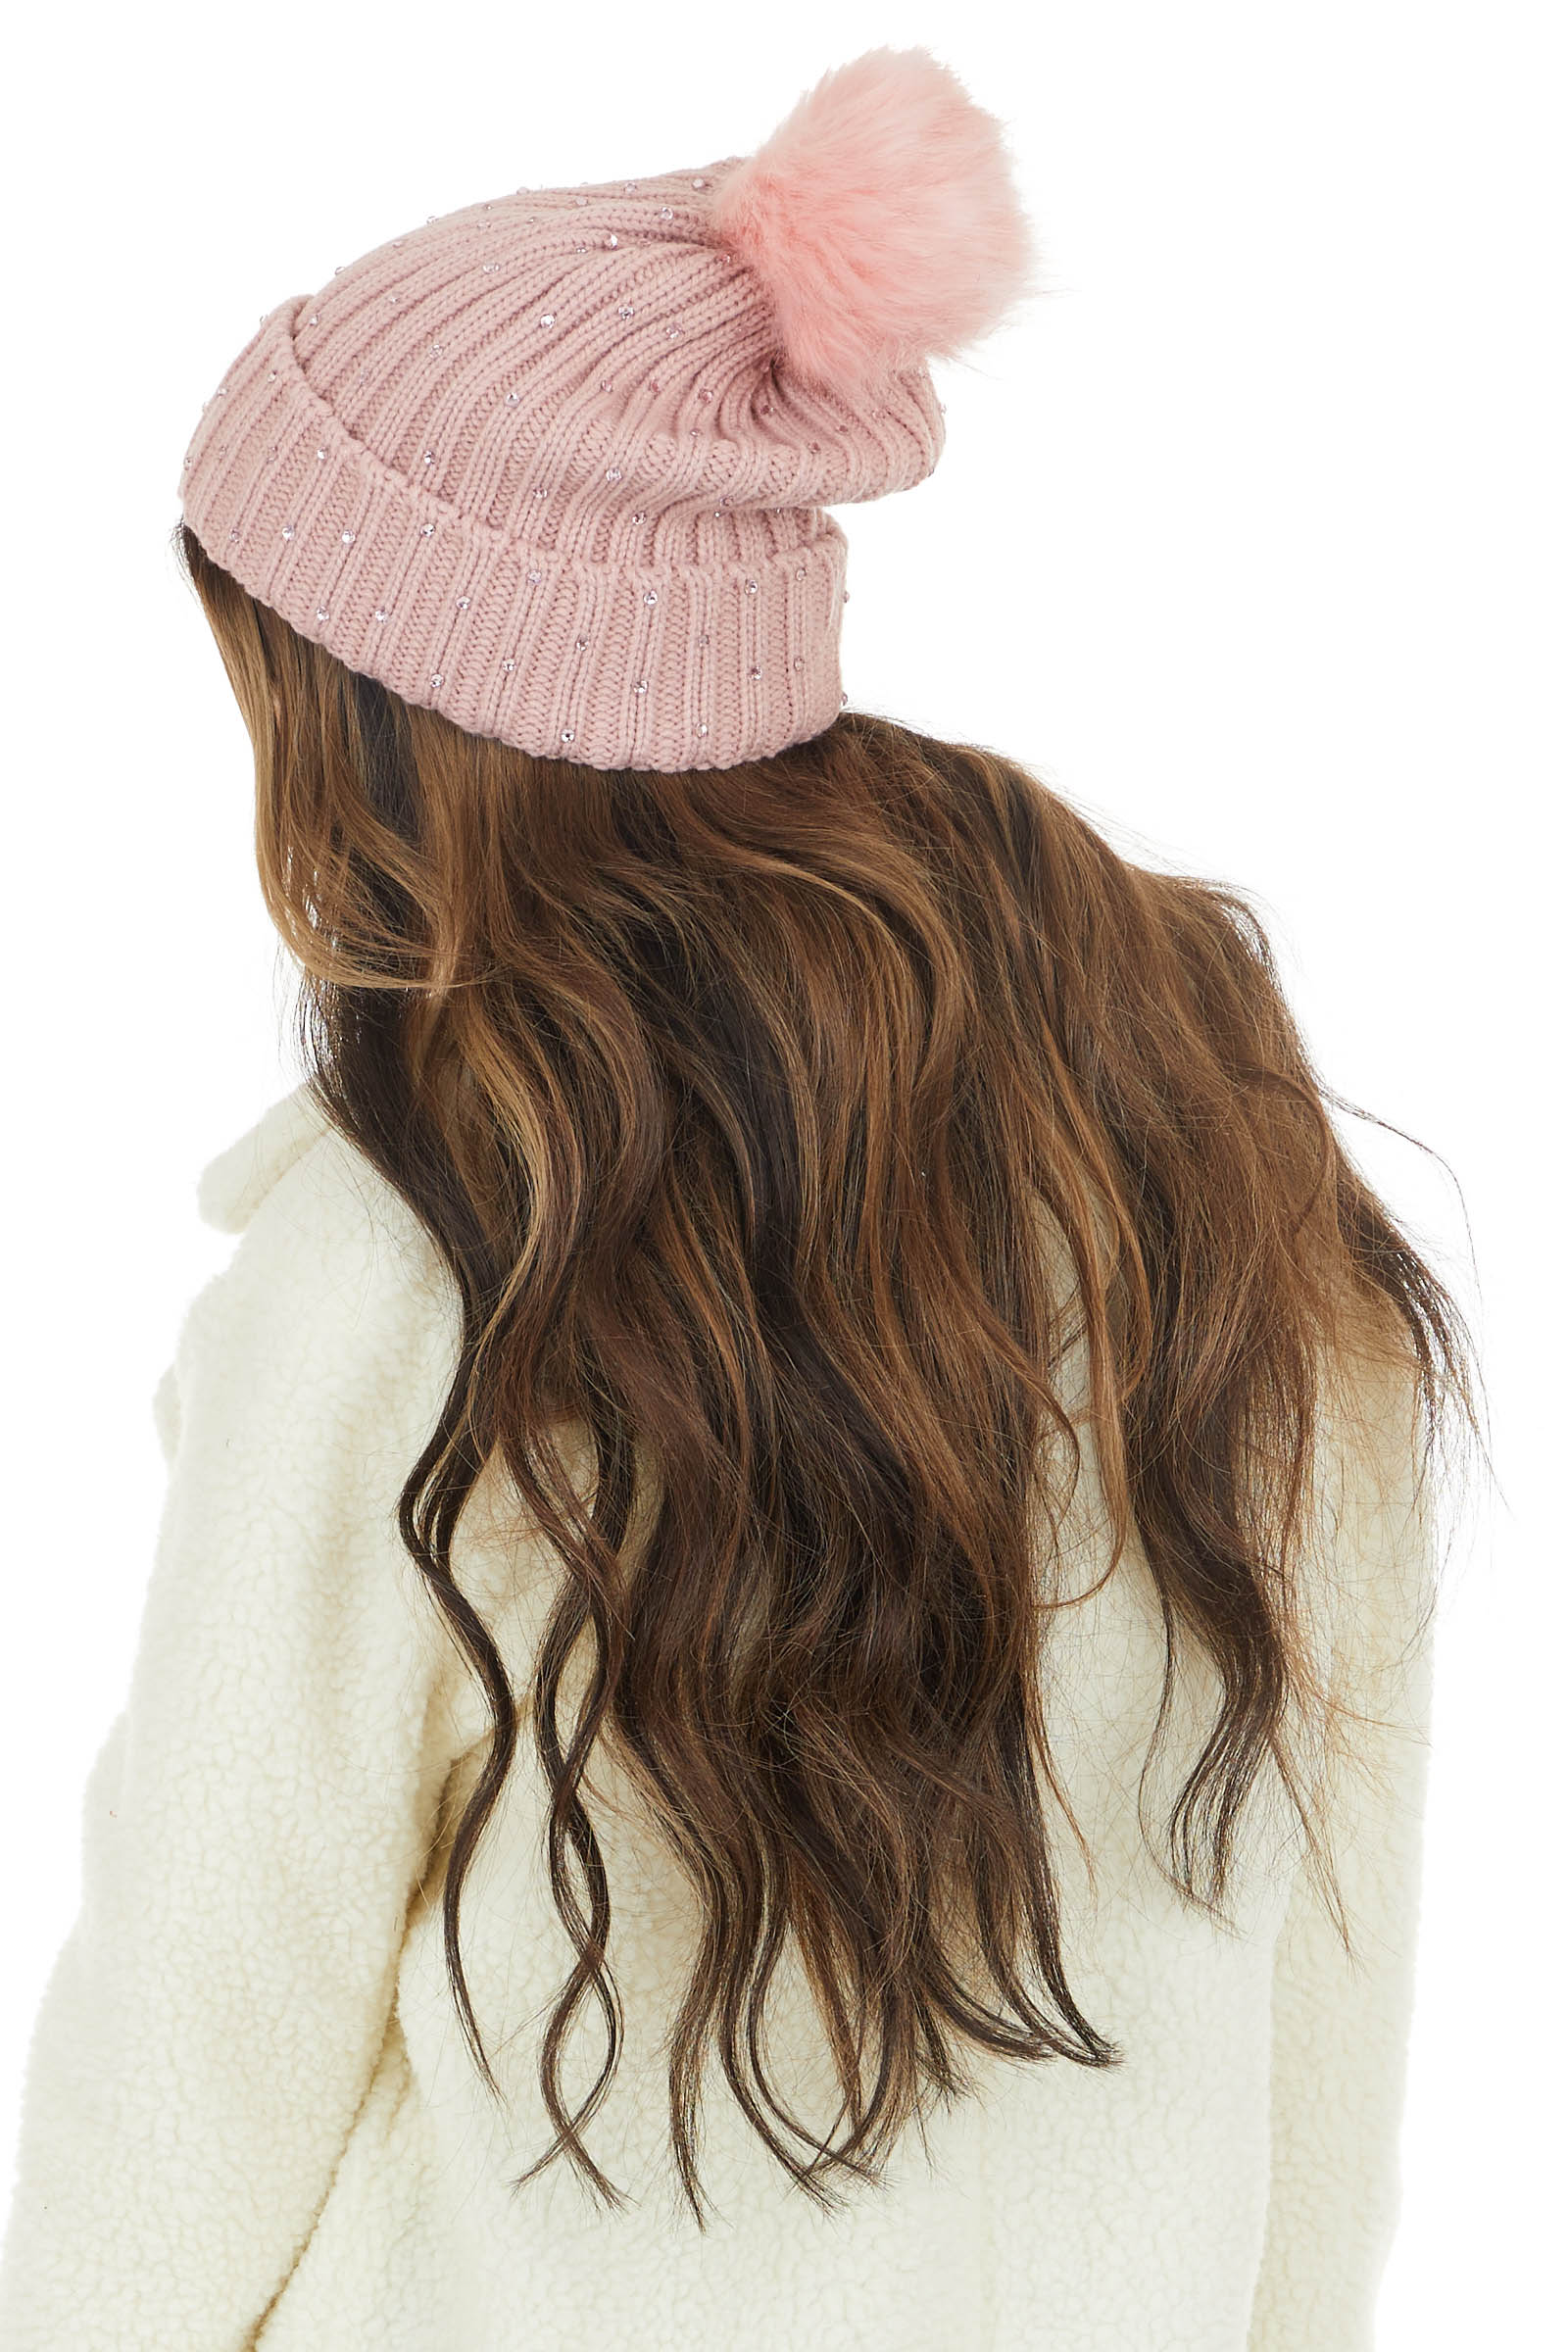 Dusty Rose Rhinestoned Ribbed Knit Beanie with Pom Pom